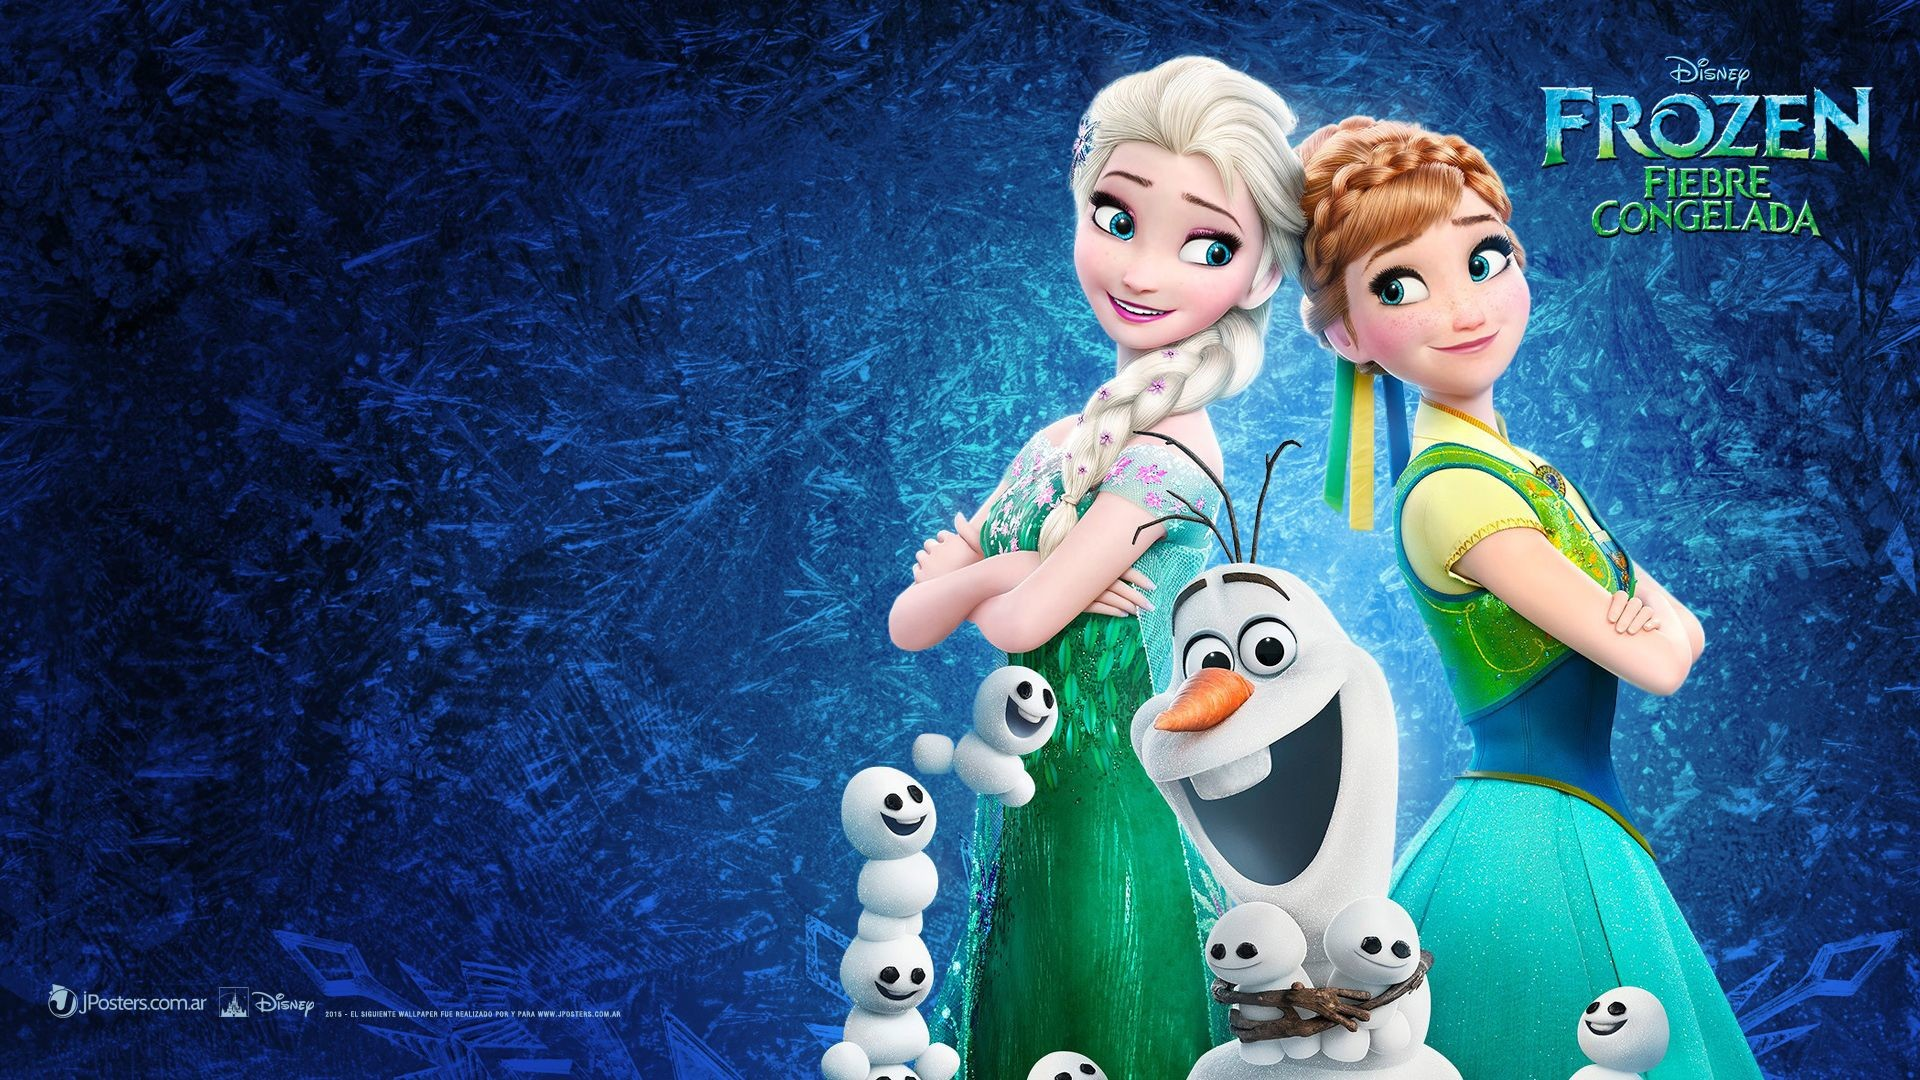 1920x1080 Frozen Fever HD Wallpaper and background photos of Frozen Fever Wallpaper  for fans of Frozen Fever images.